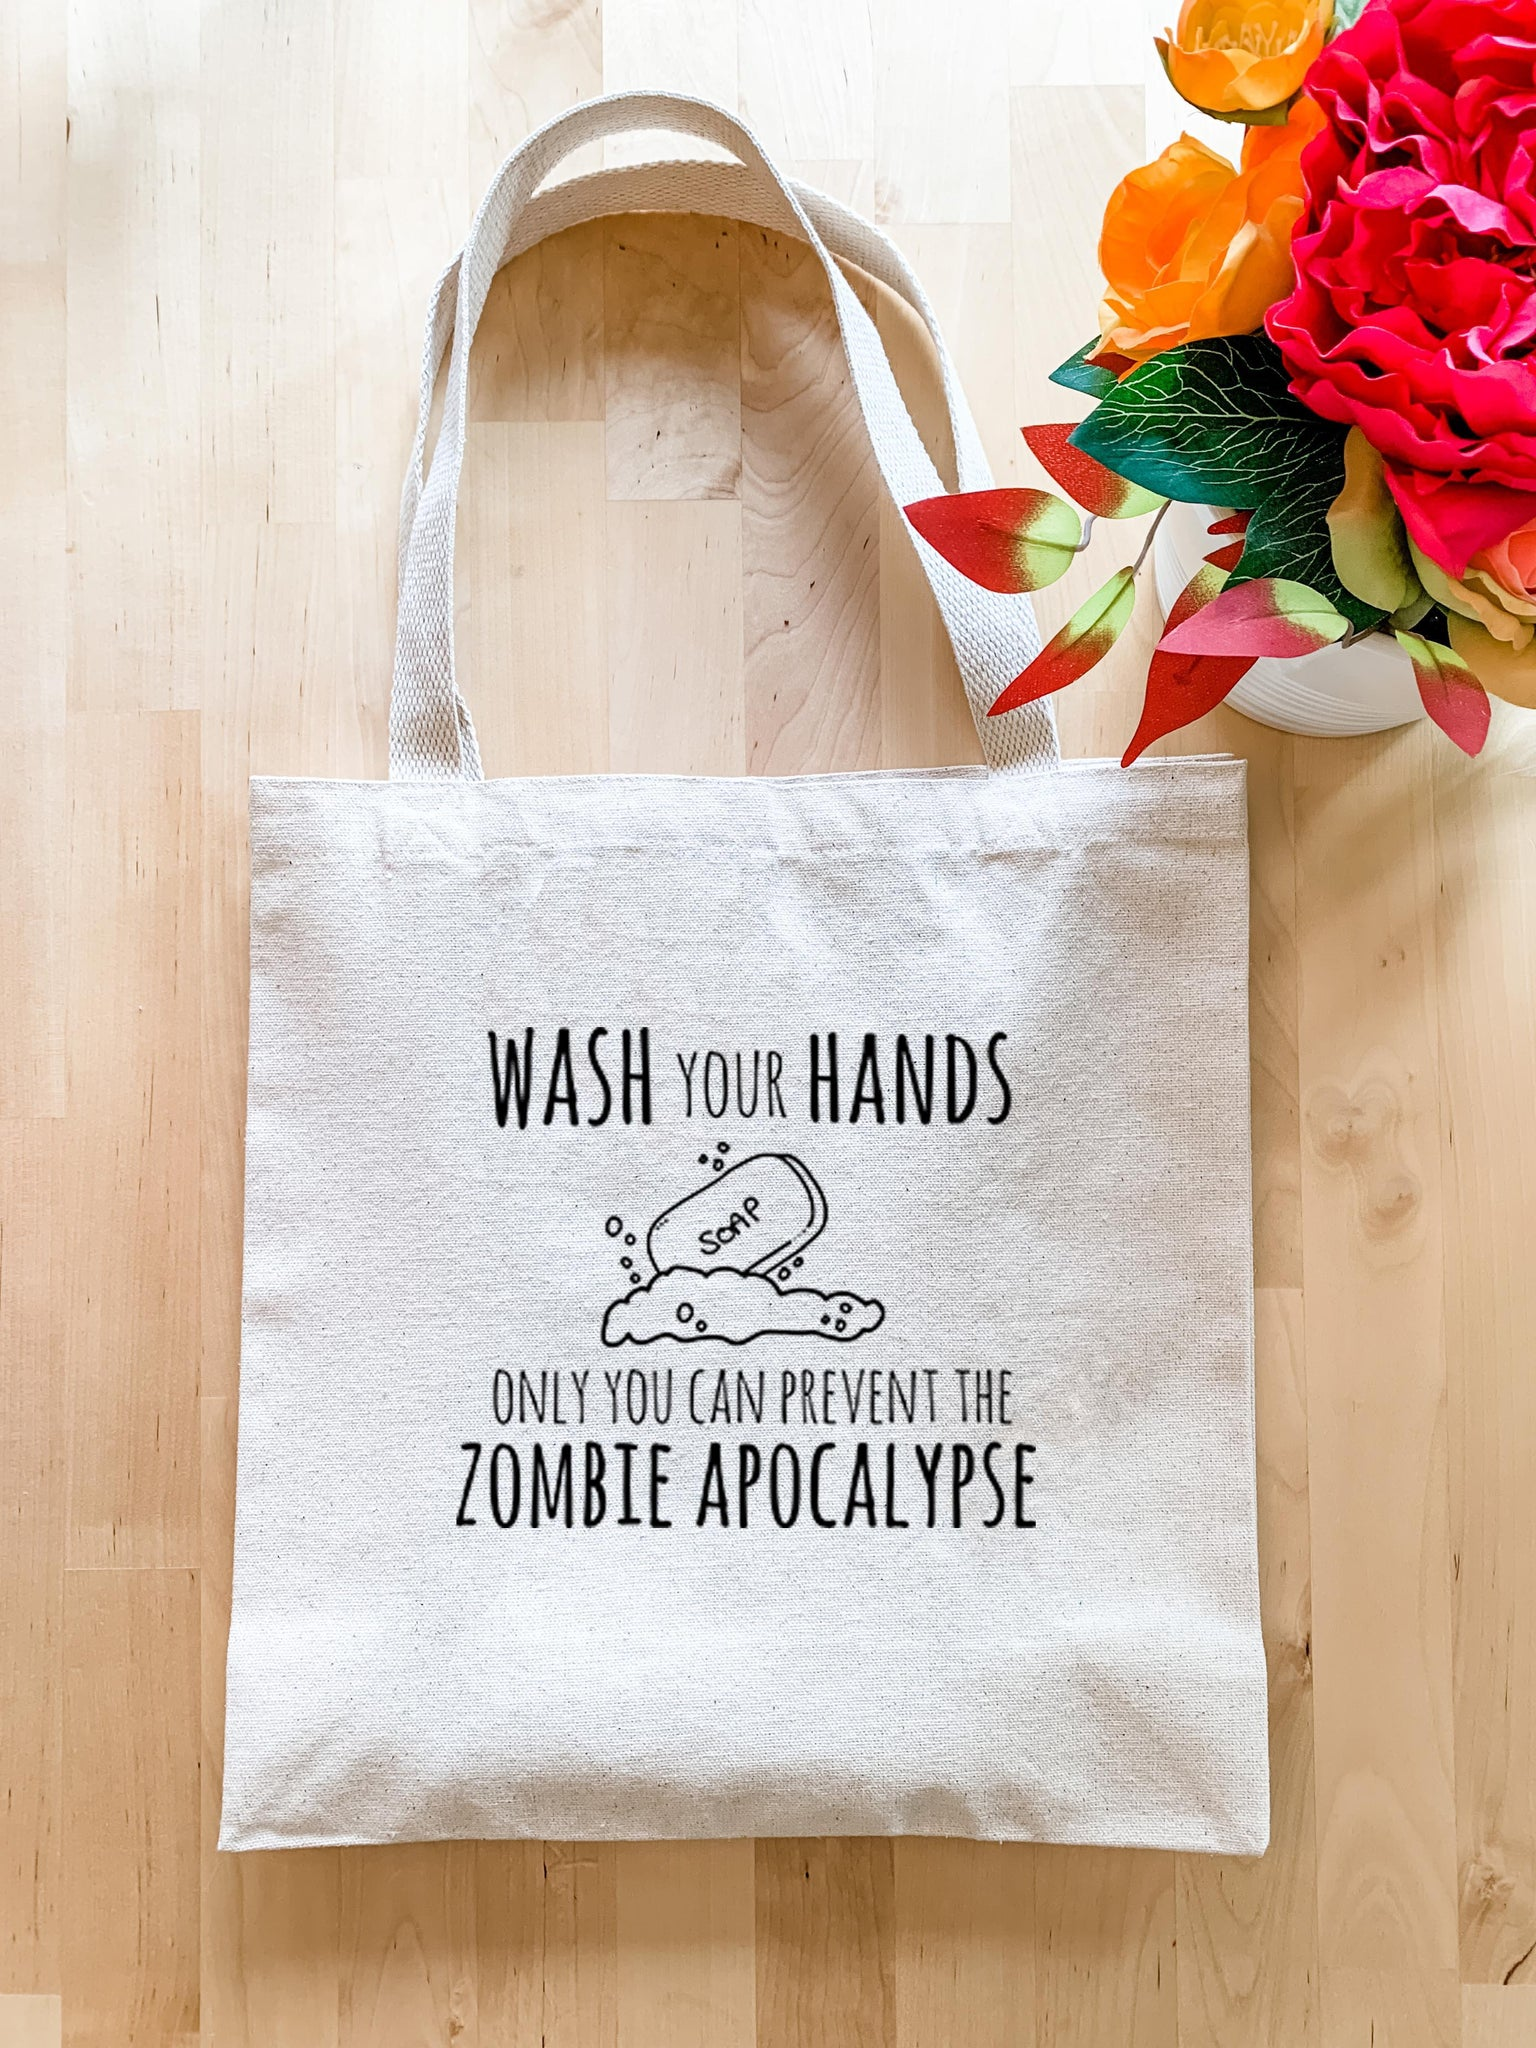 Wash Your Hands Only You Can Prevent The Zombie Apocalypse - Tote Bag - MoonlightMakers